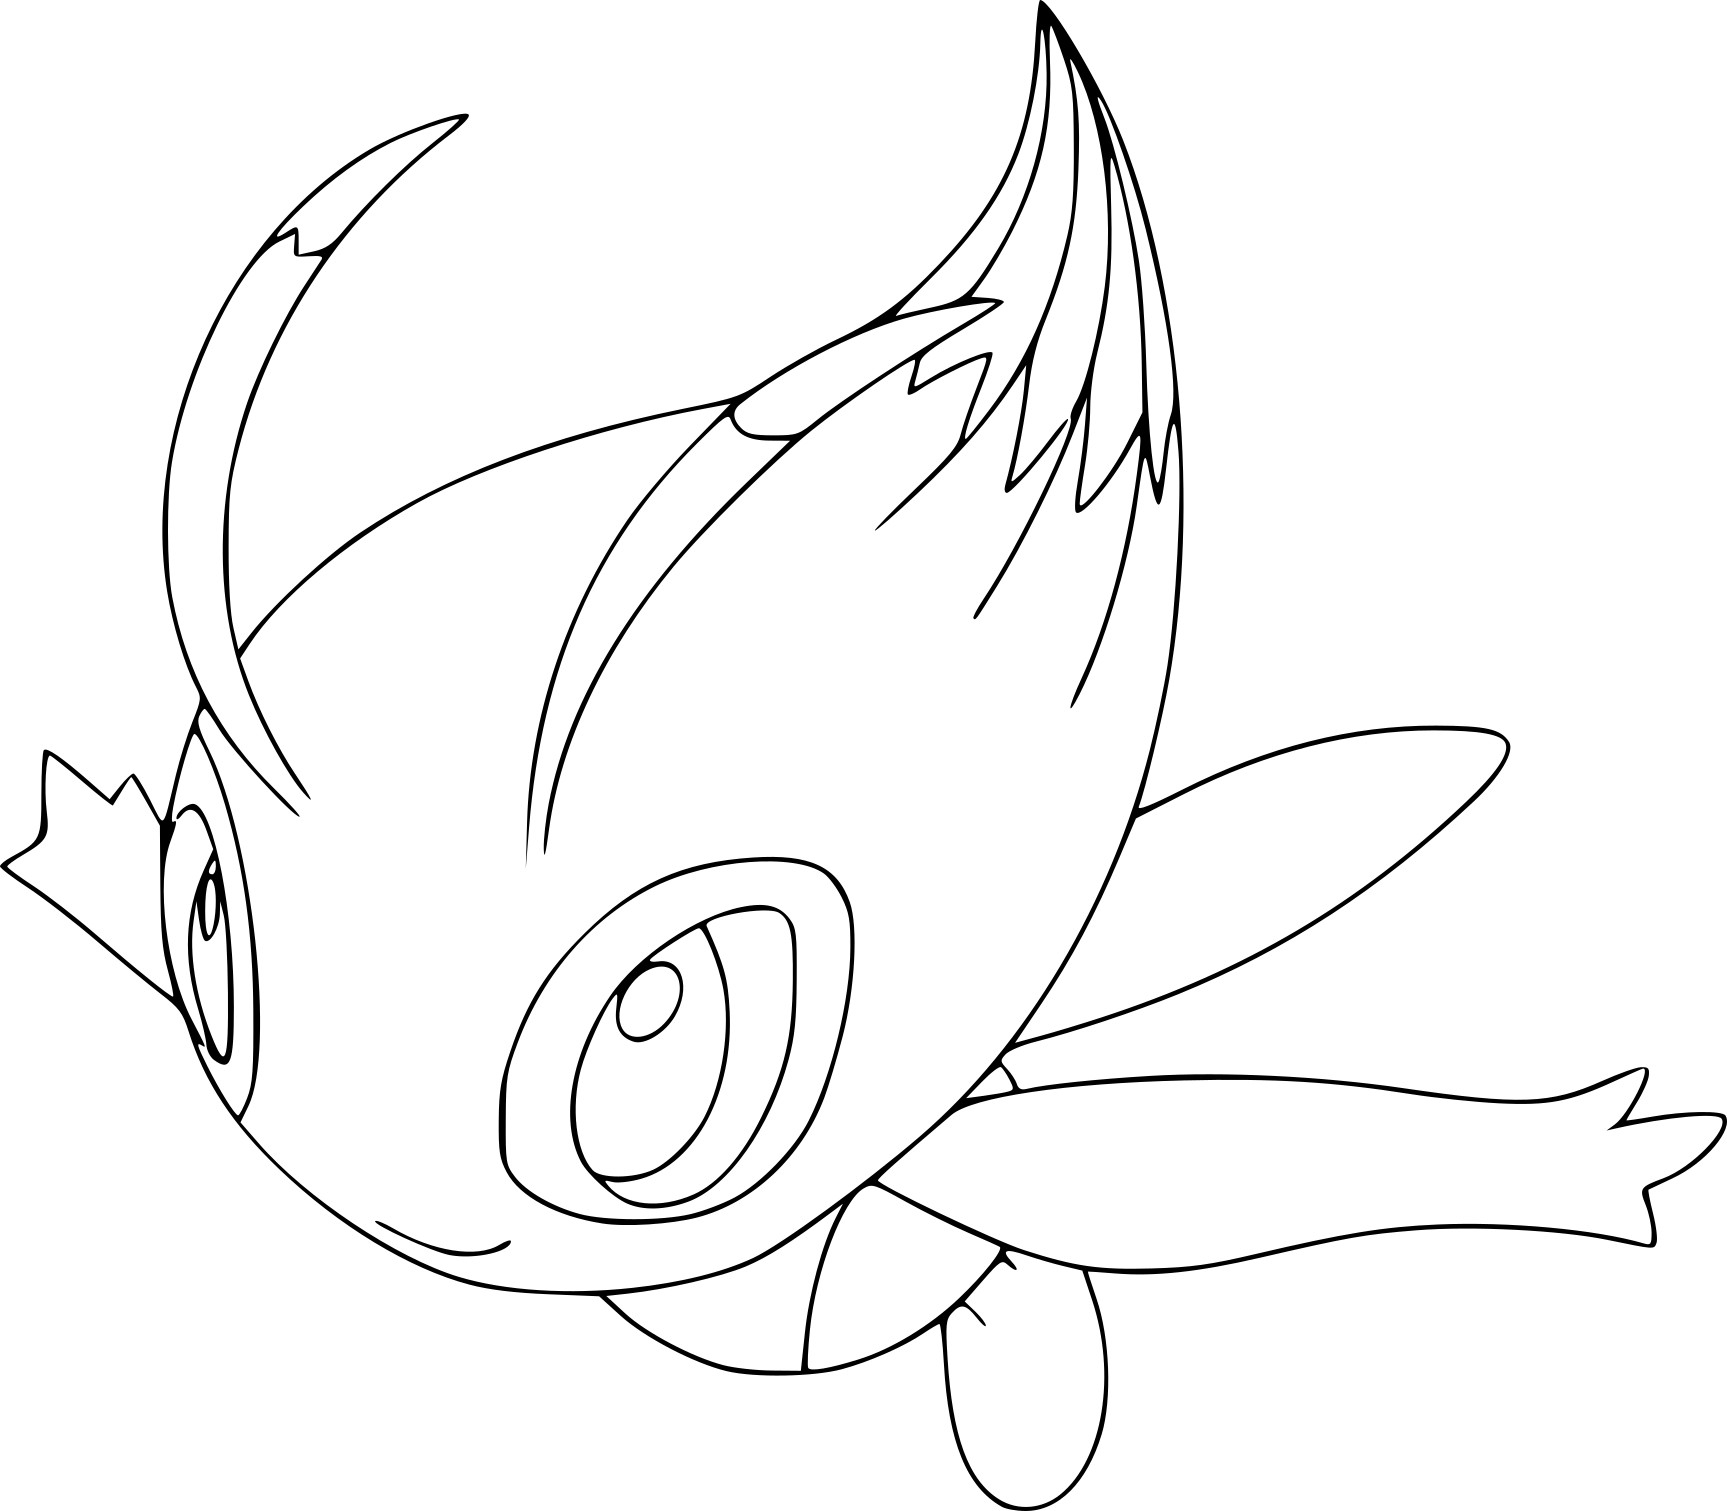 1727x1511 Celebi Coloring Pages To Print Coloring For Kids